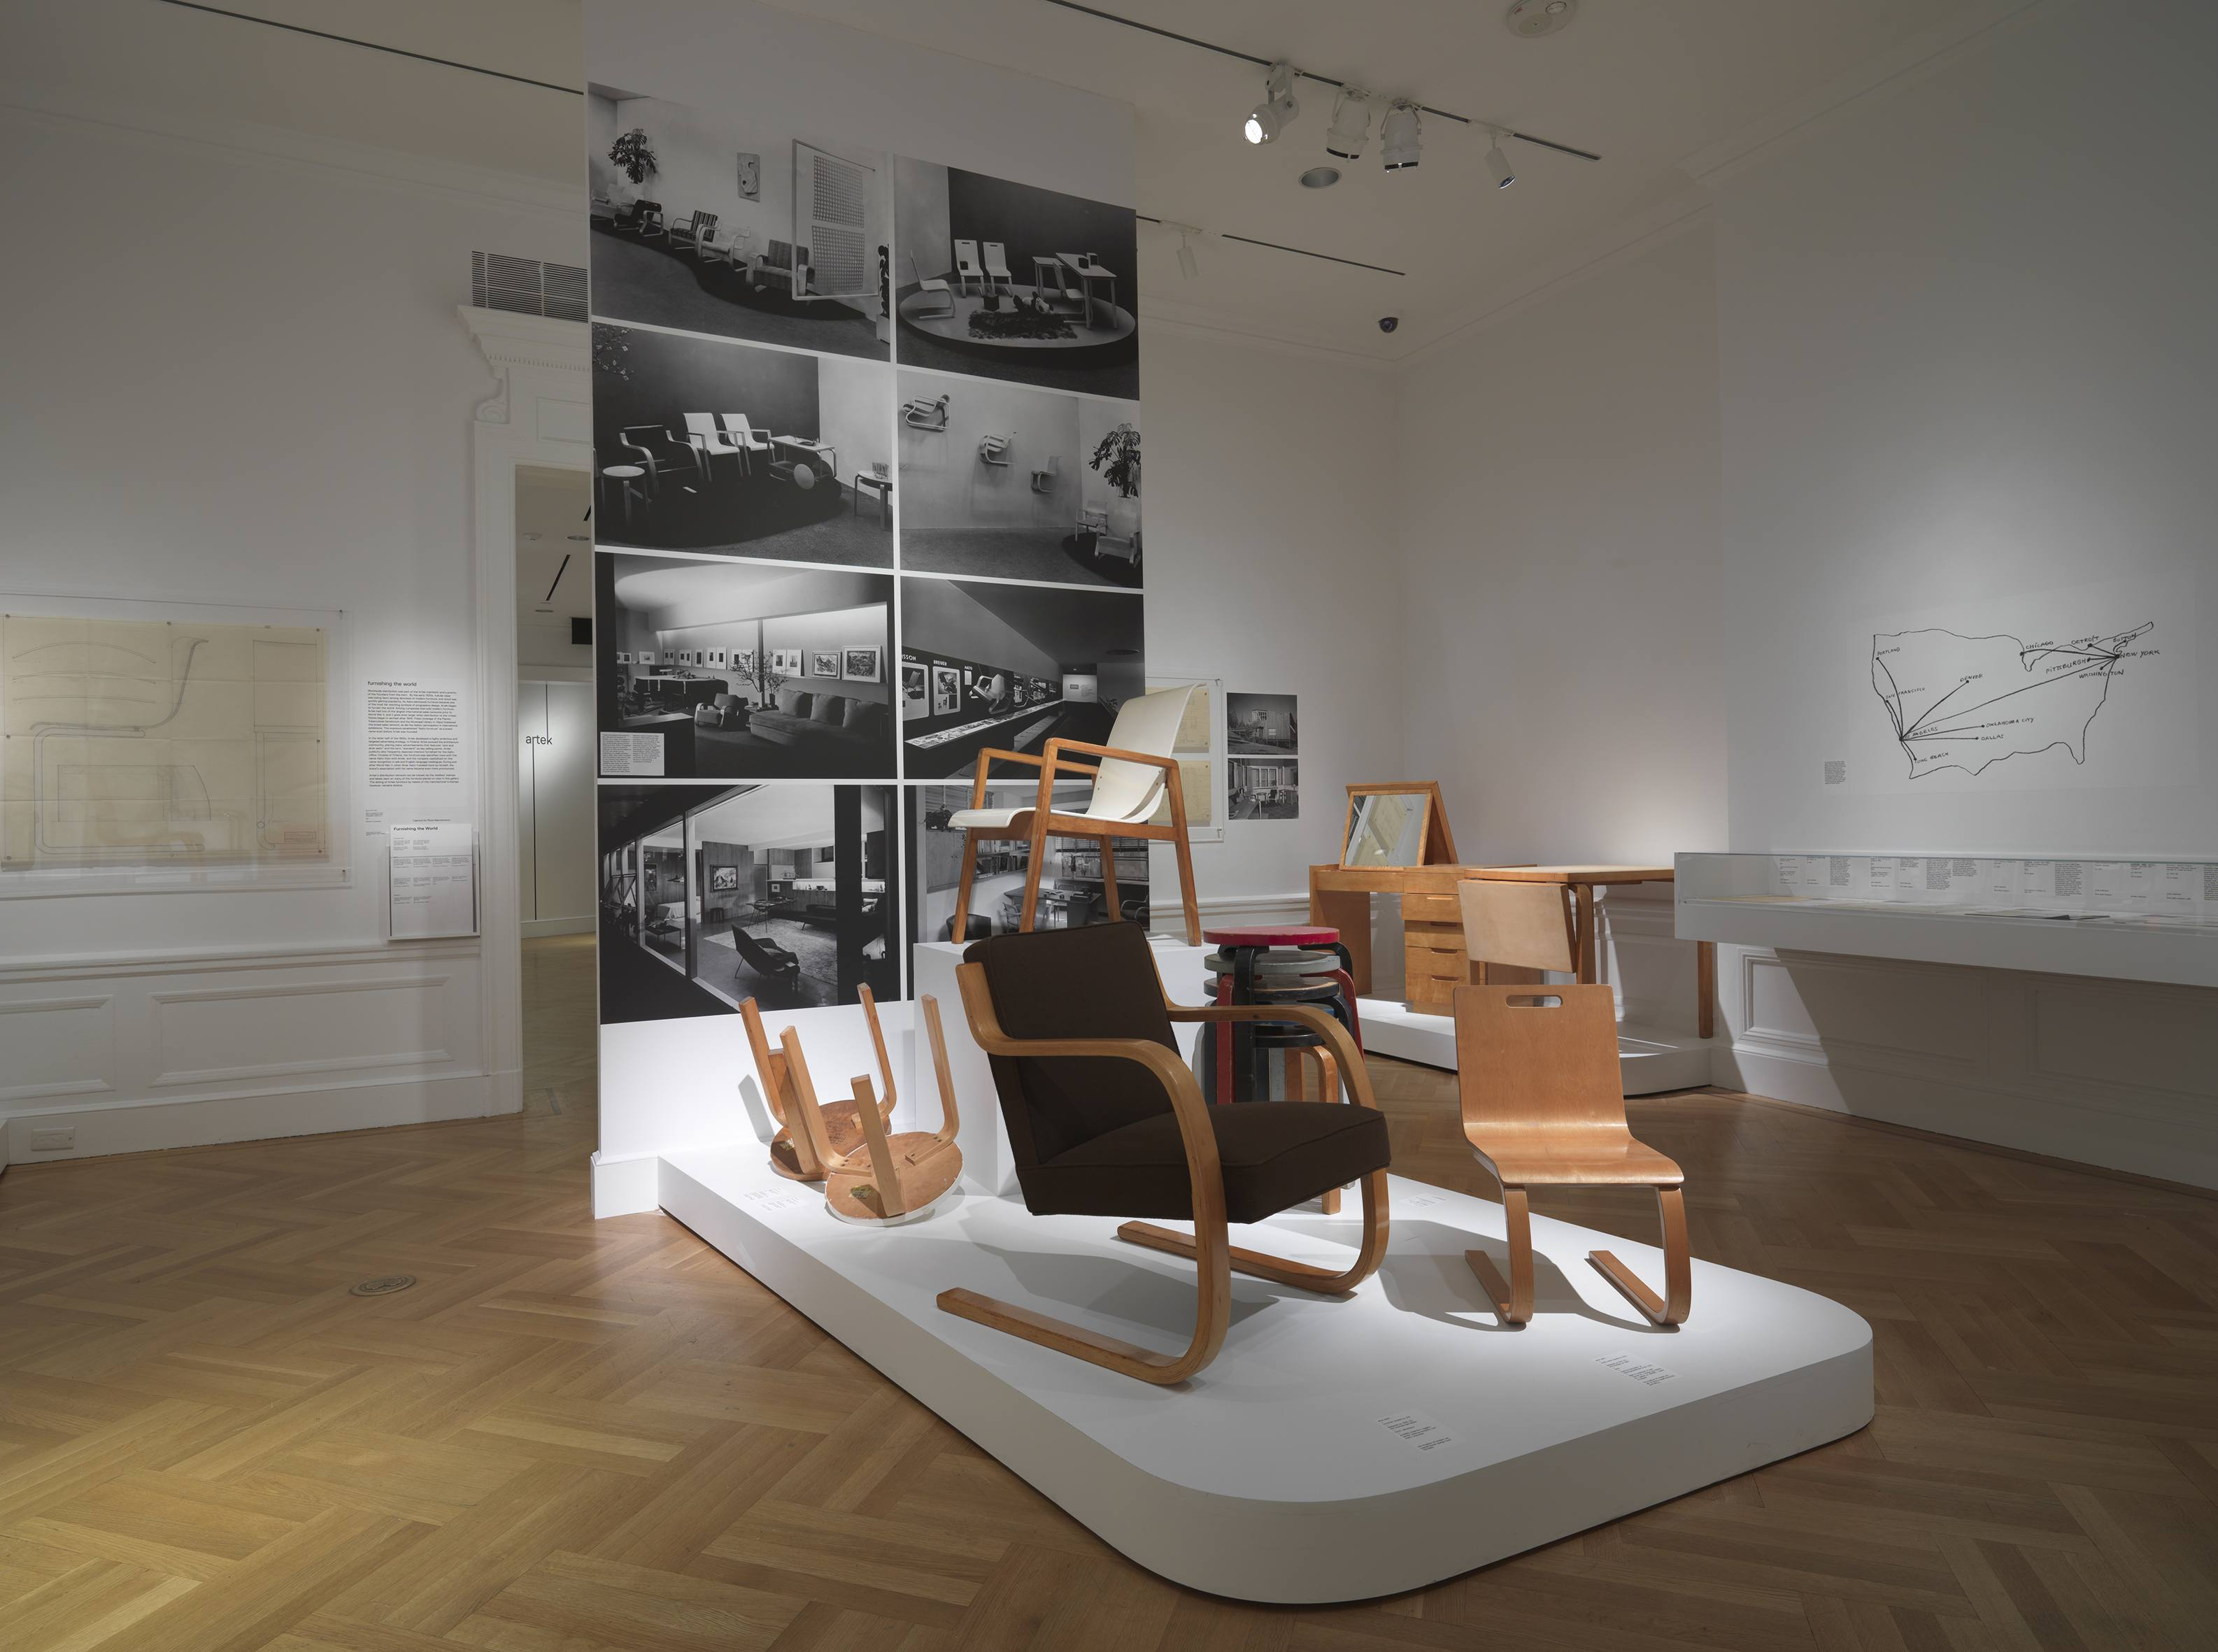 chair design museum lane furniture leather office the best museums in new york city 6sqft